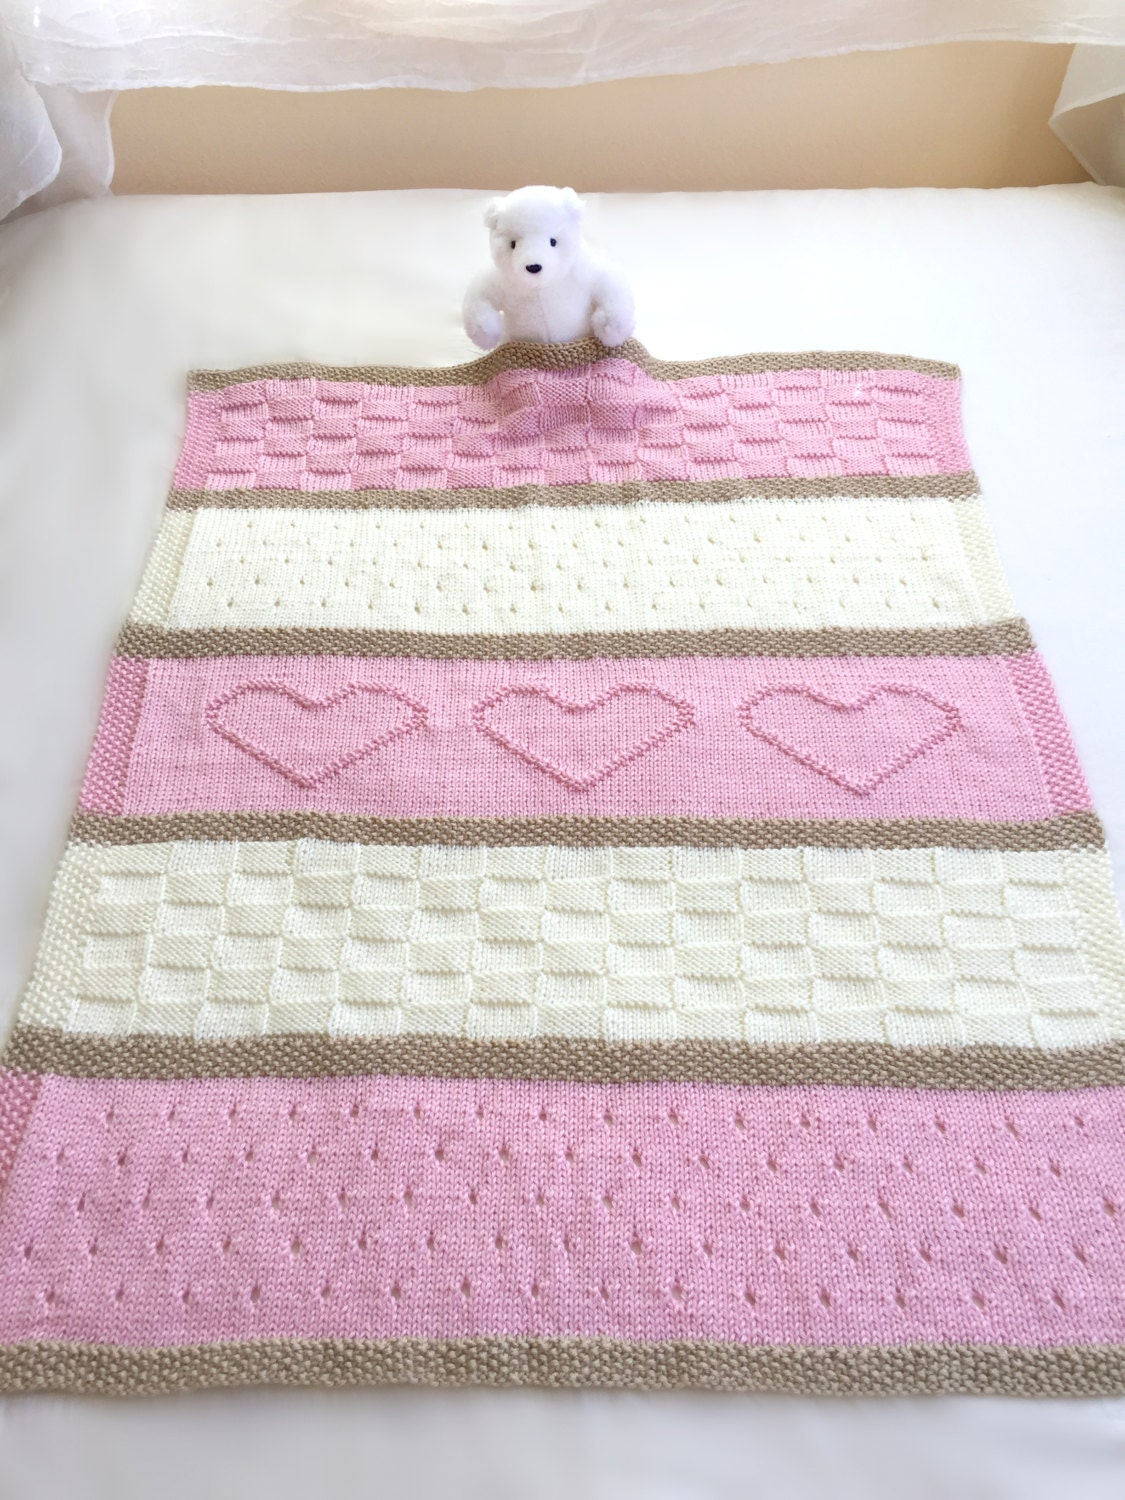 Knitting Blankets For Babies : Baby blanket pattern knit heart